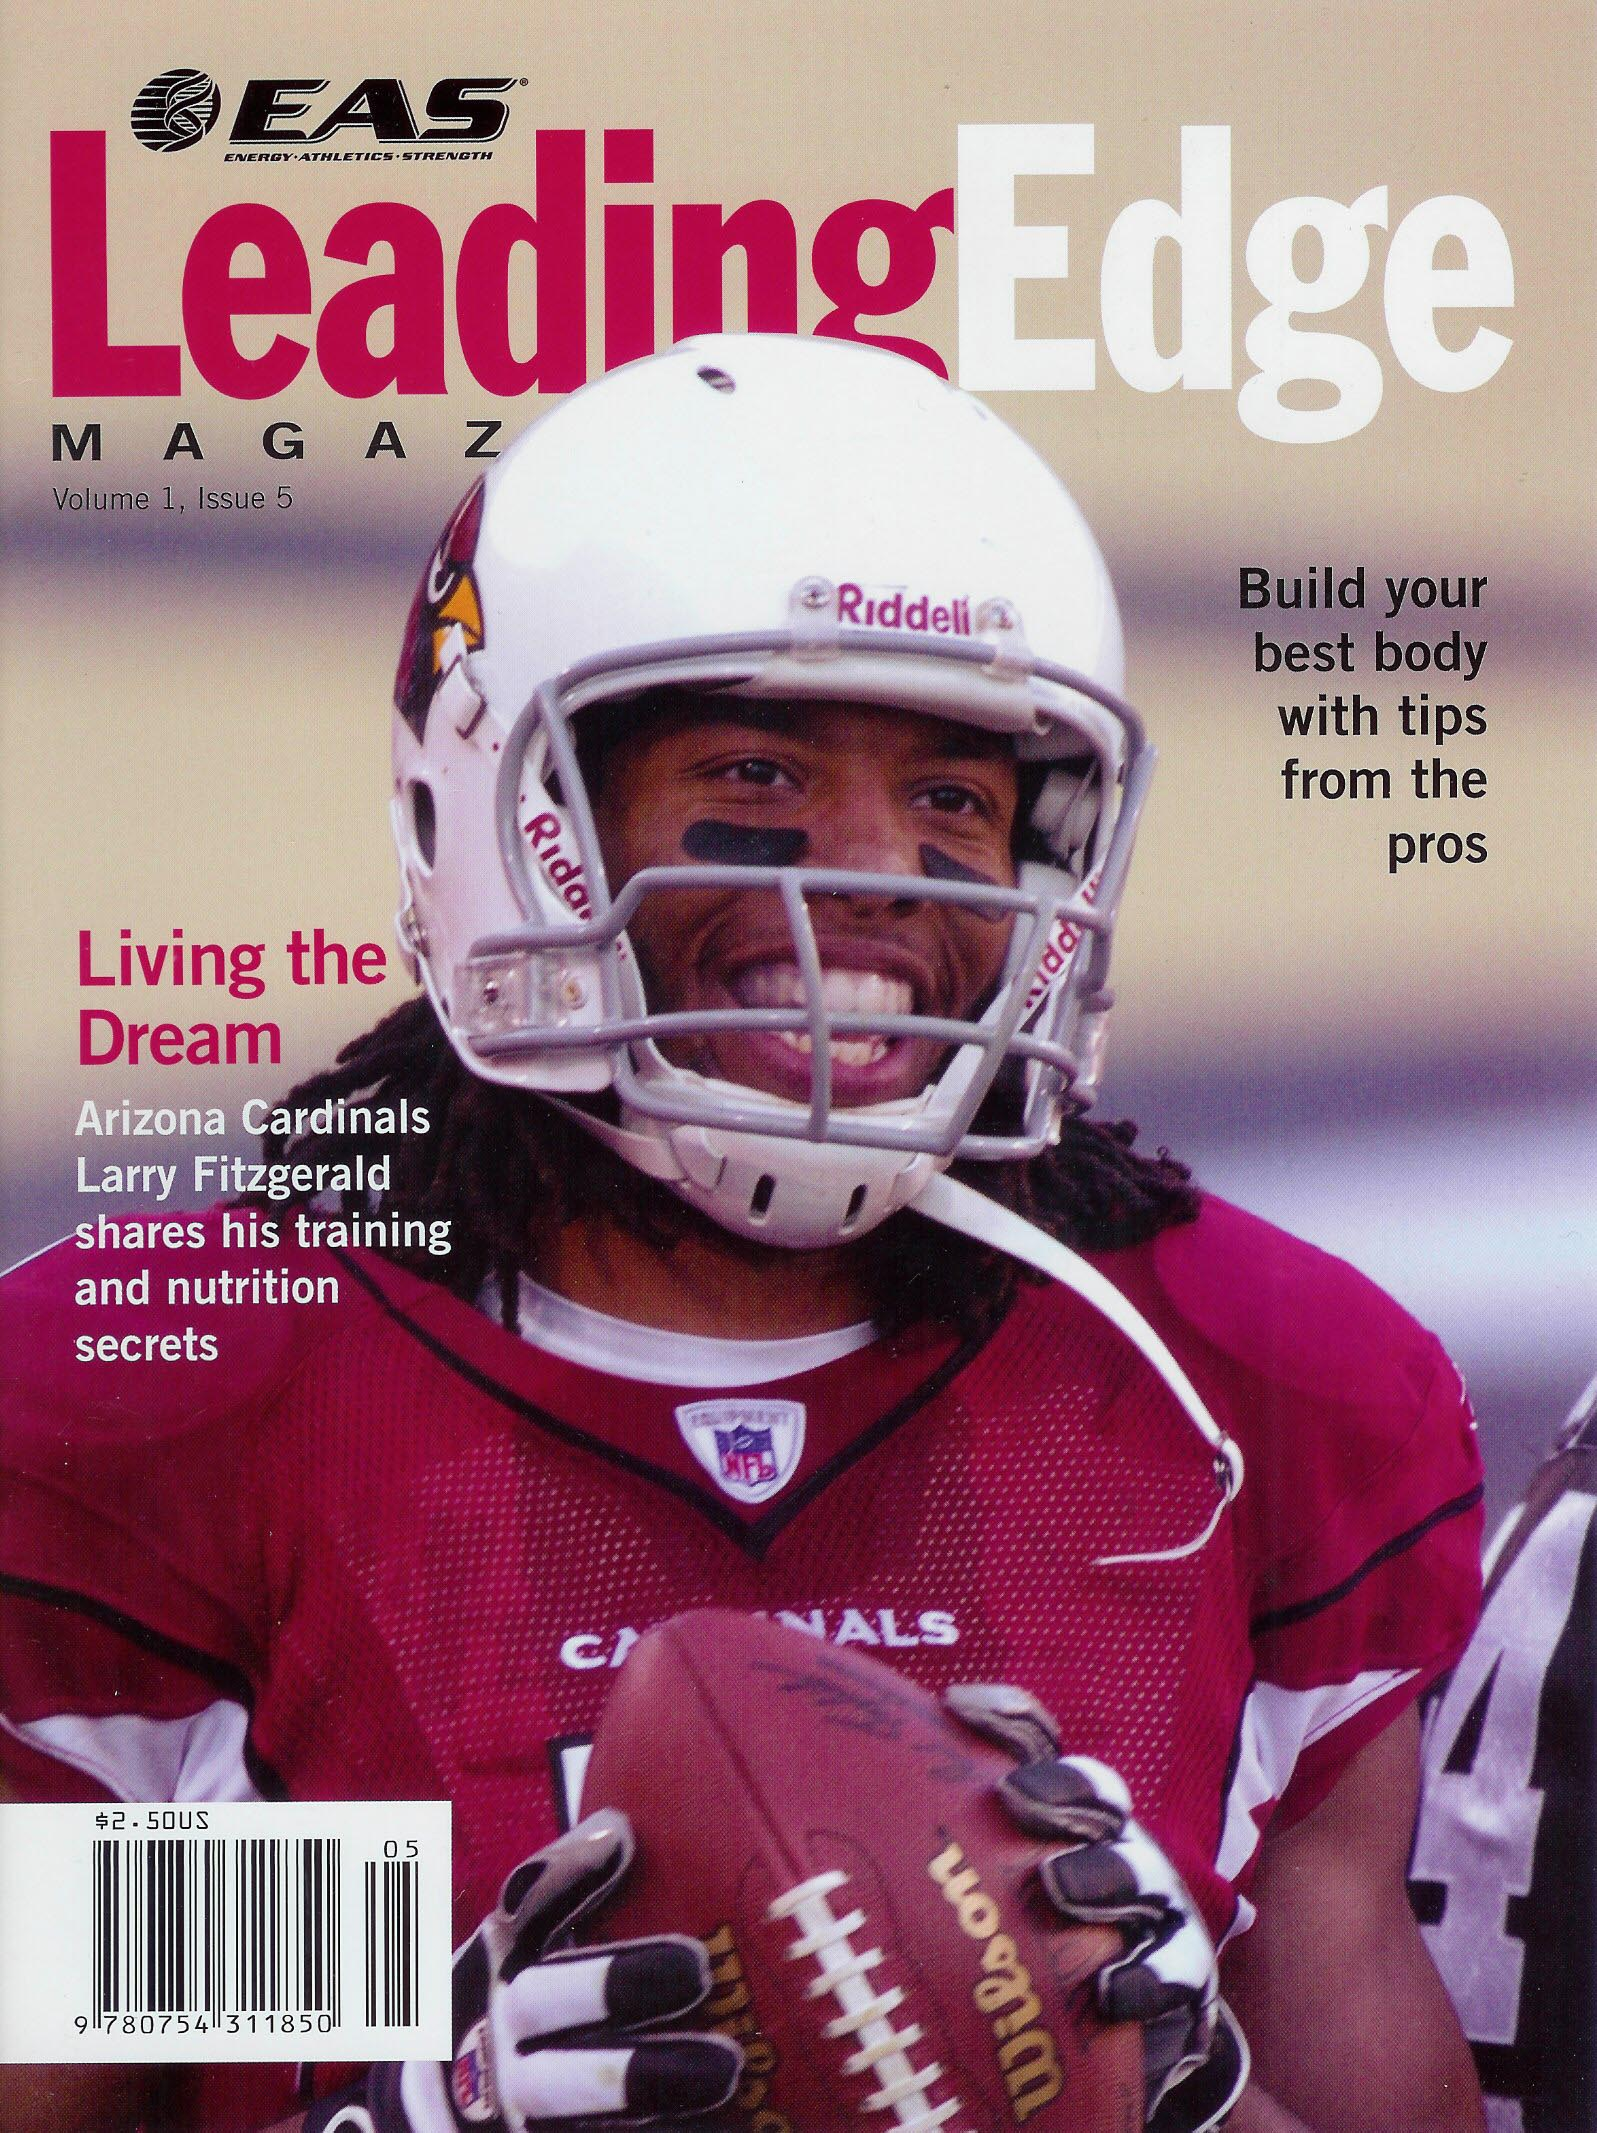 Leading Edge Magazine With Personal Trainer